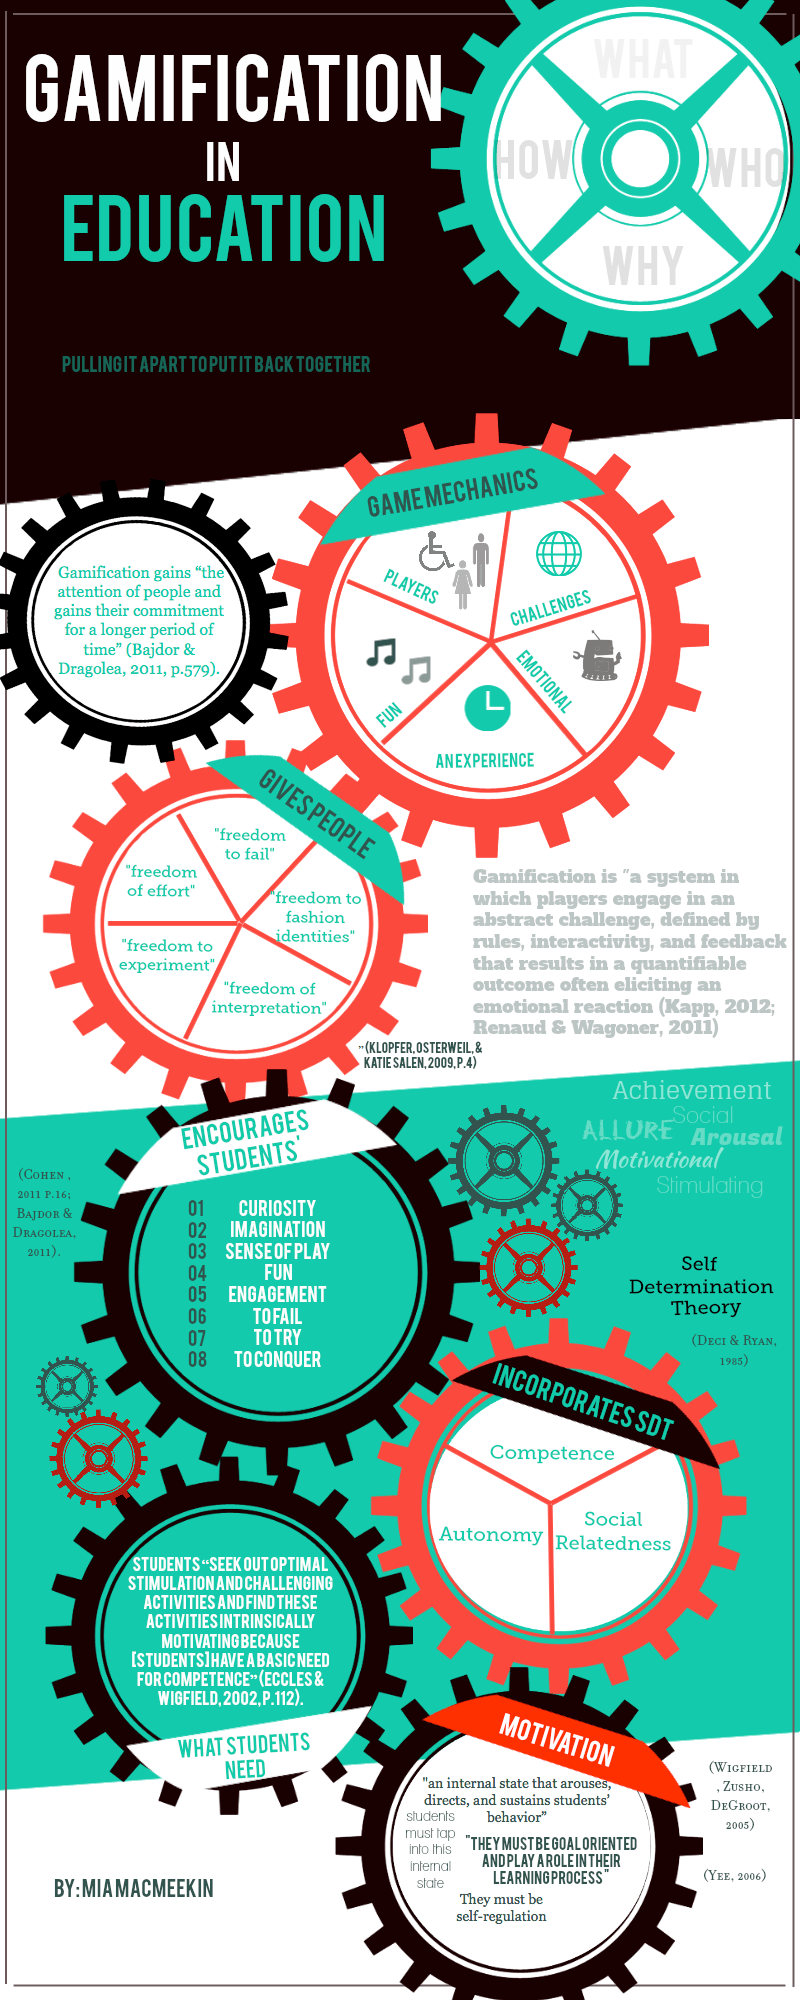 The-Gears-of-Gamification-in-Education-Infographic